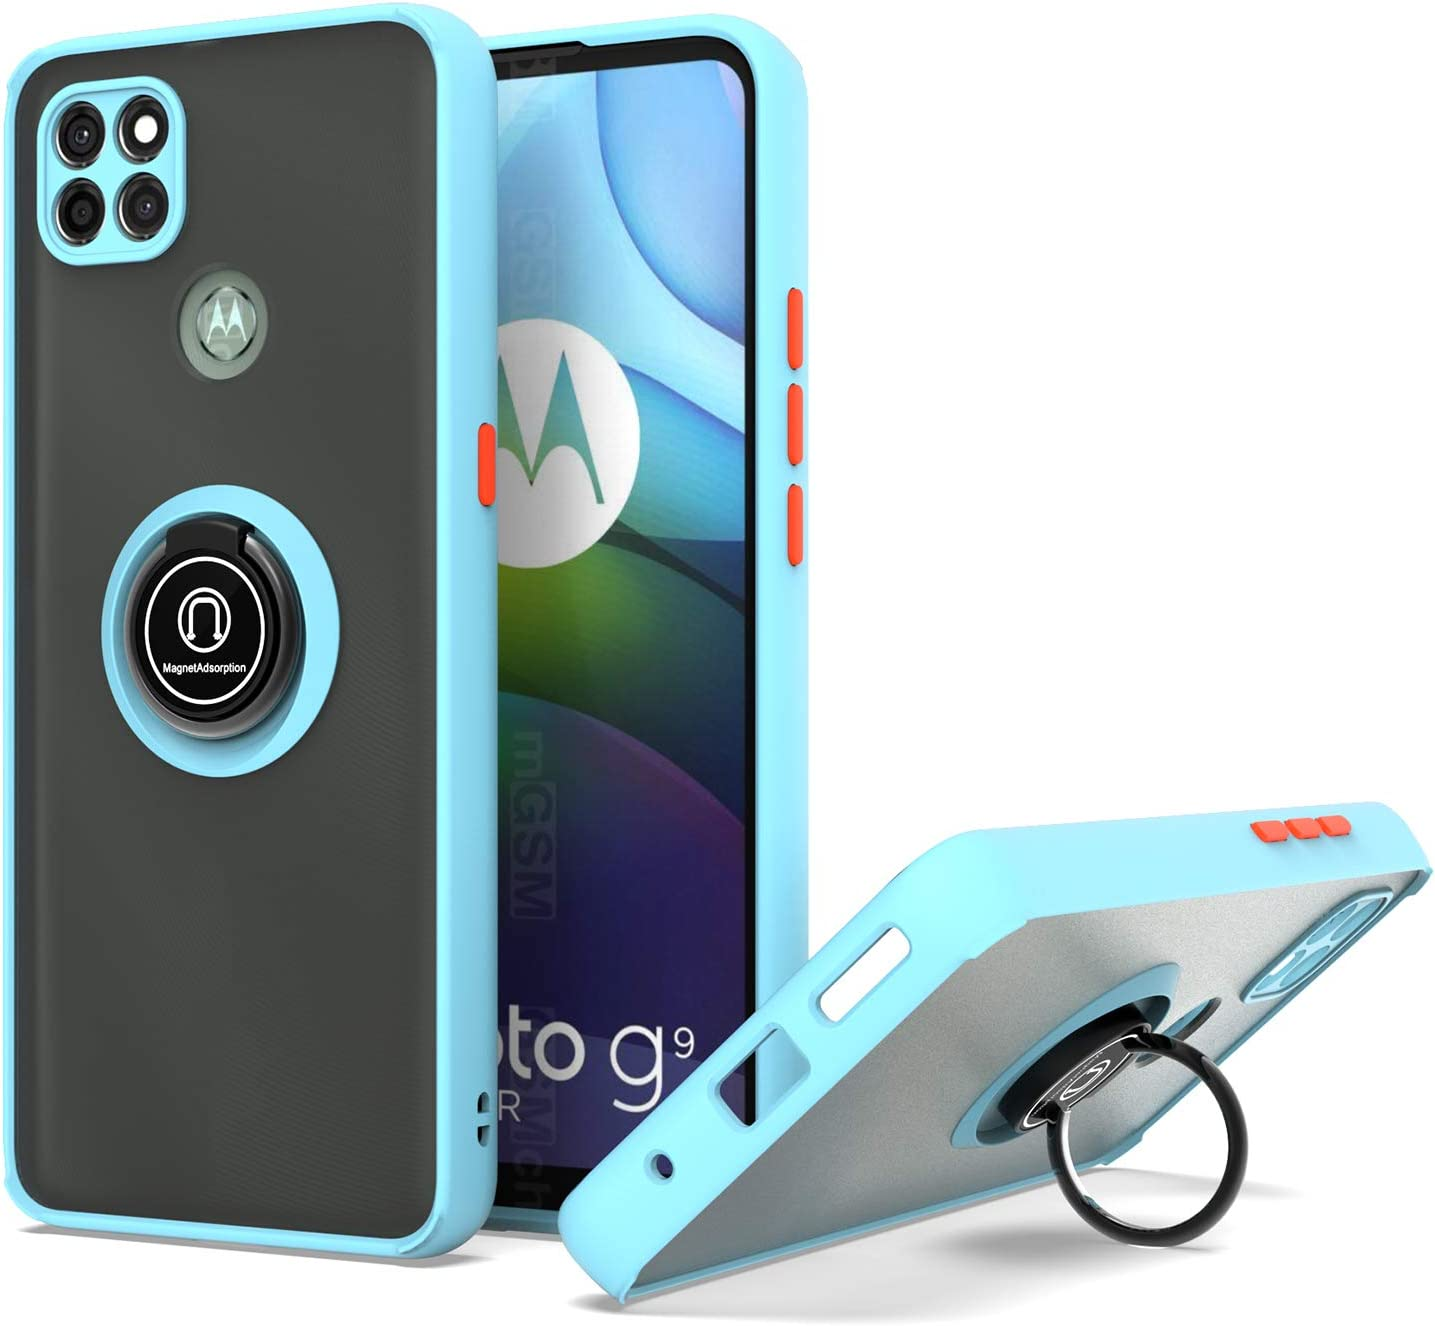 KWEICASE Cell Phone Case for Motorola Moto G9 Power, Moto G9 Power Case with 360 Degree Rotate Magnetic Ring Kickstand Soft Bumper Matte Clear Back Shockproof Protective Cover Case, Light Blue